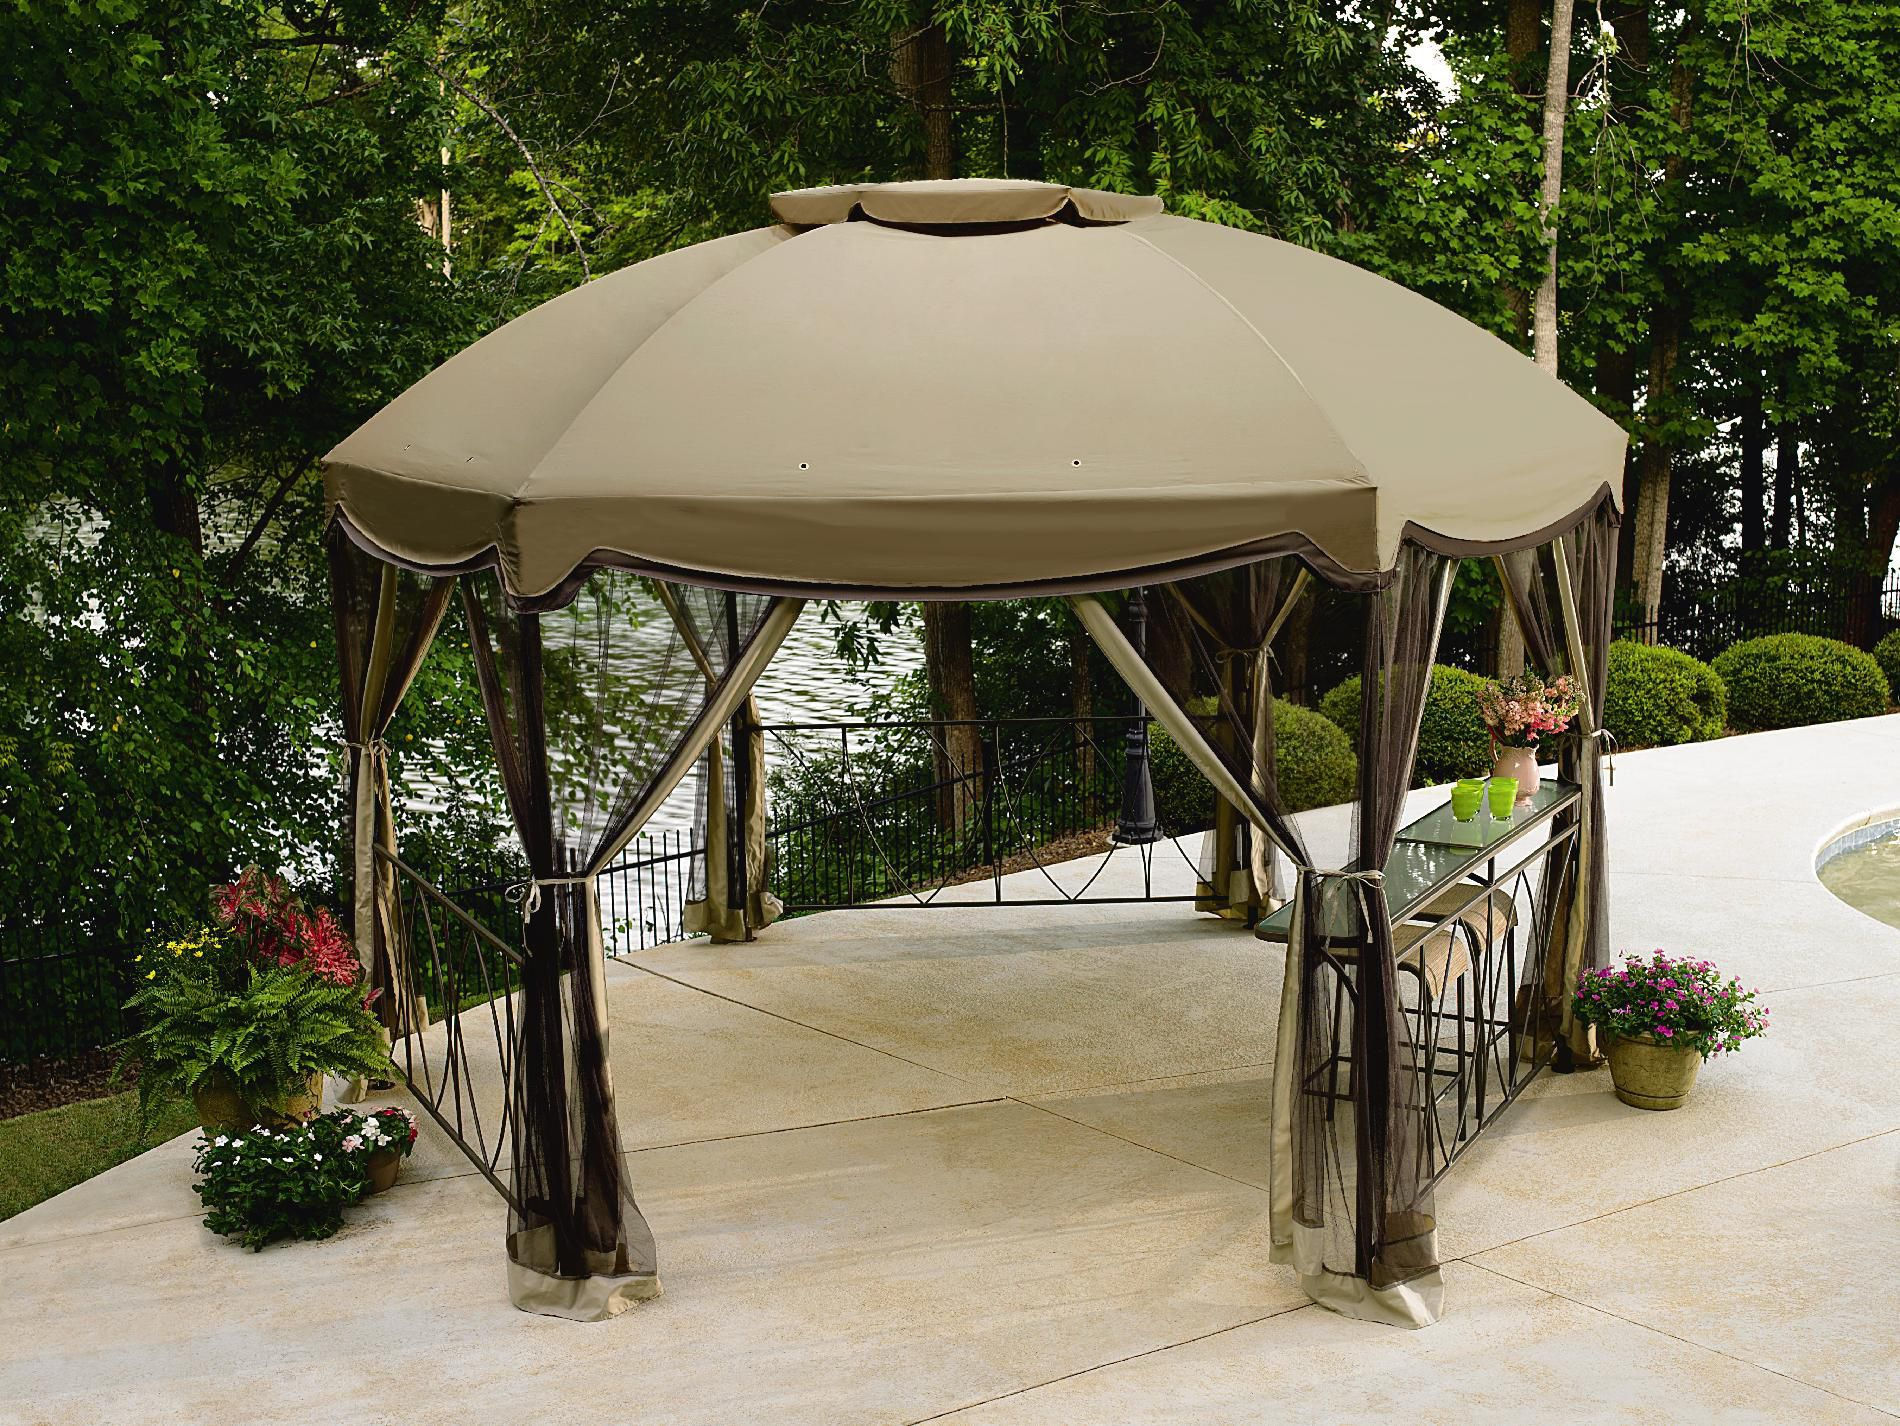 Garden Oasis Grandview Hexagon Gazebo with Netting